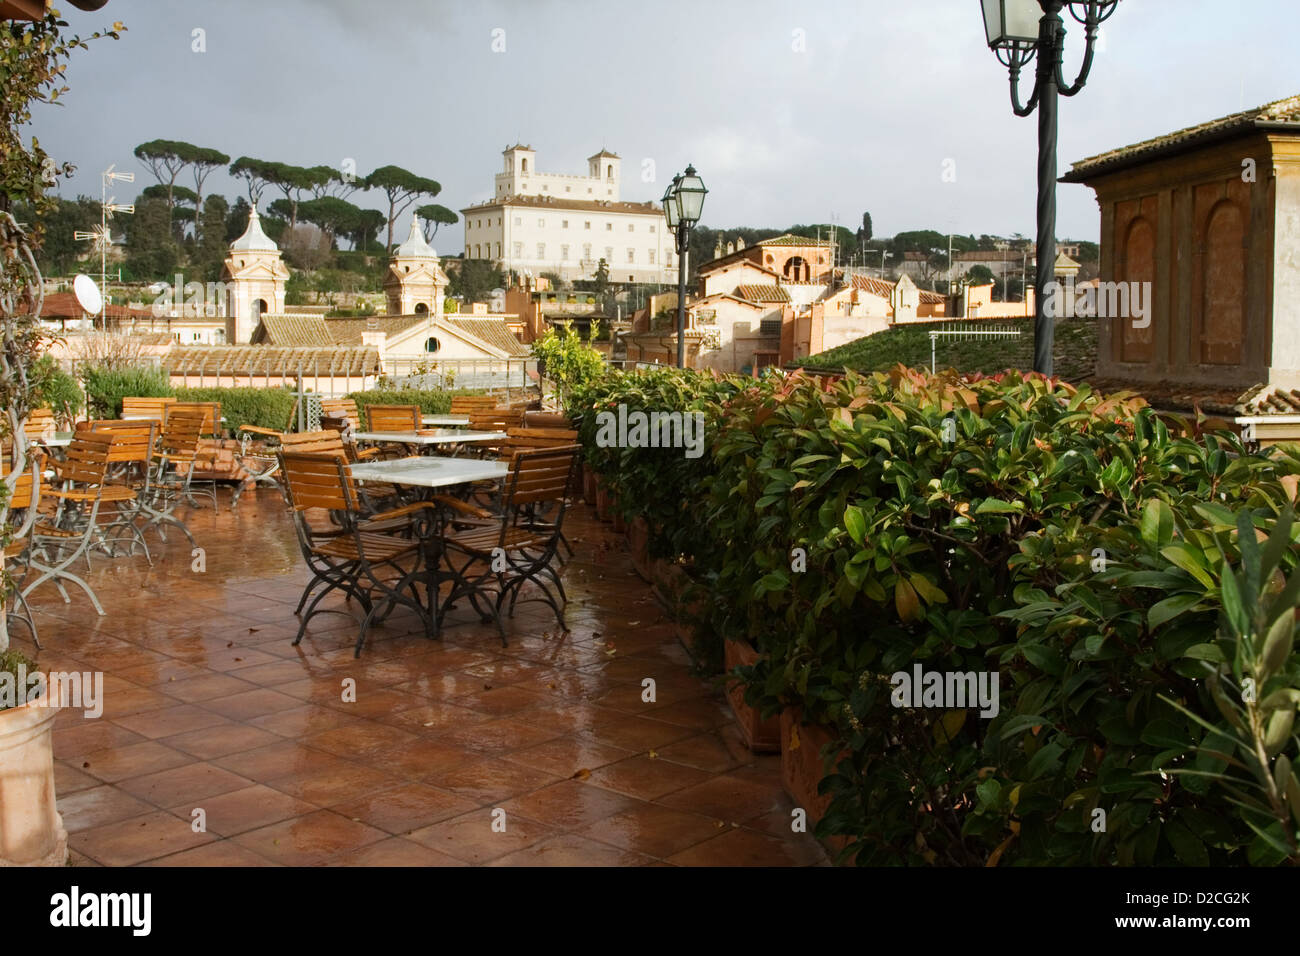 Roof Cafe Stock Photos & Roof Cafe Stock Images - Alamy